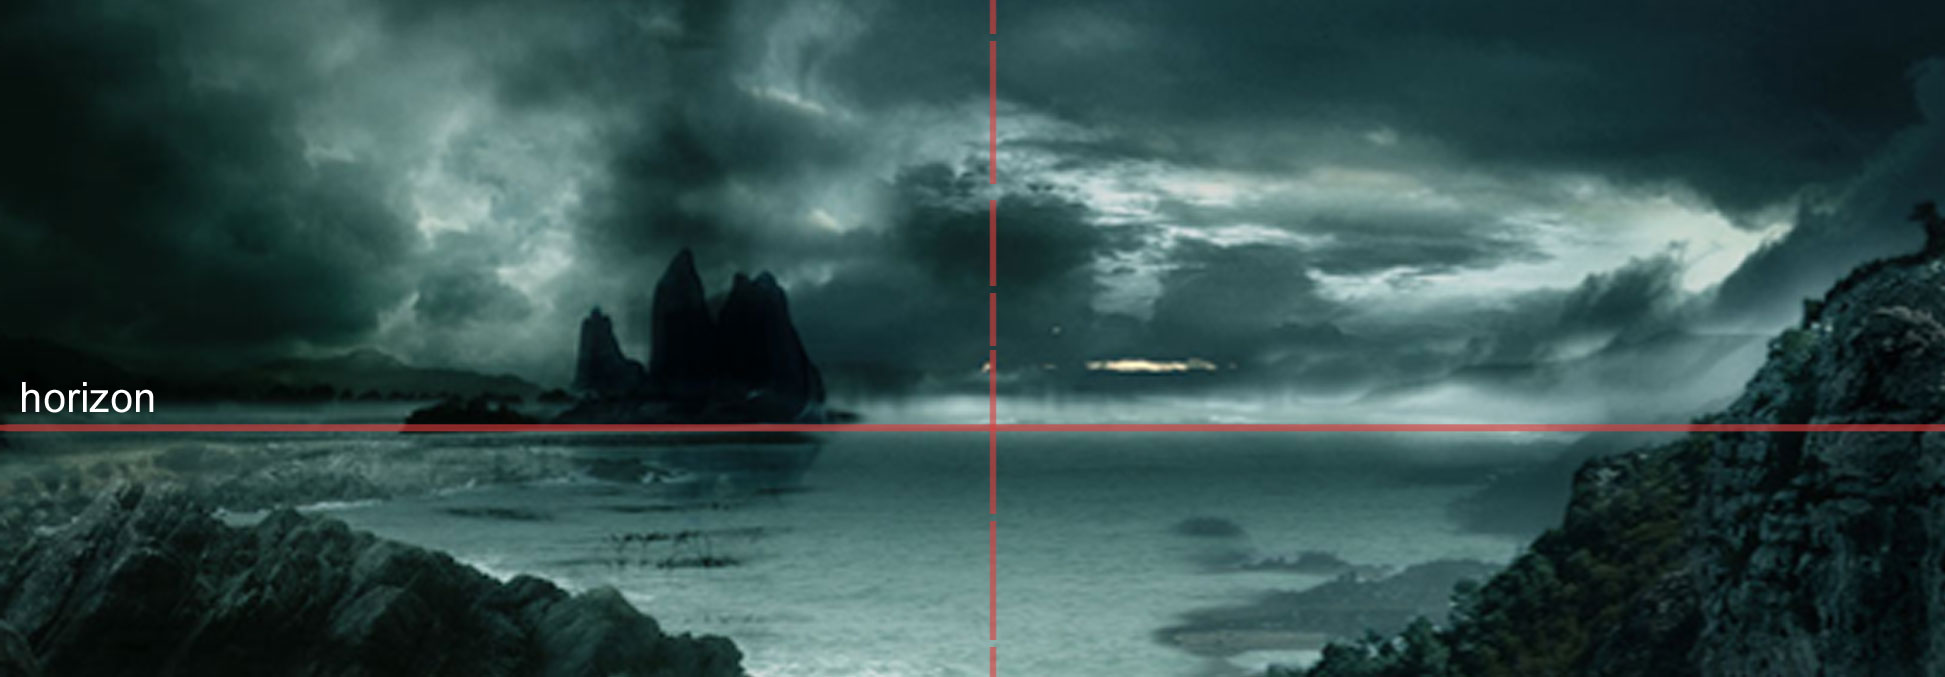 Tutoriel matte painting